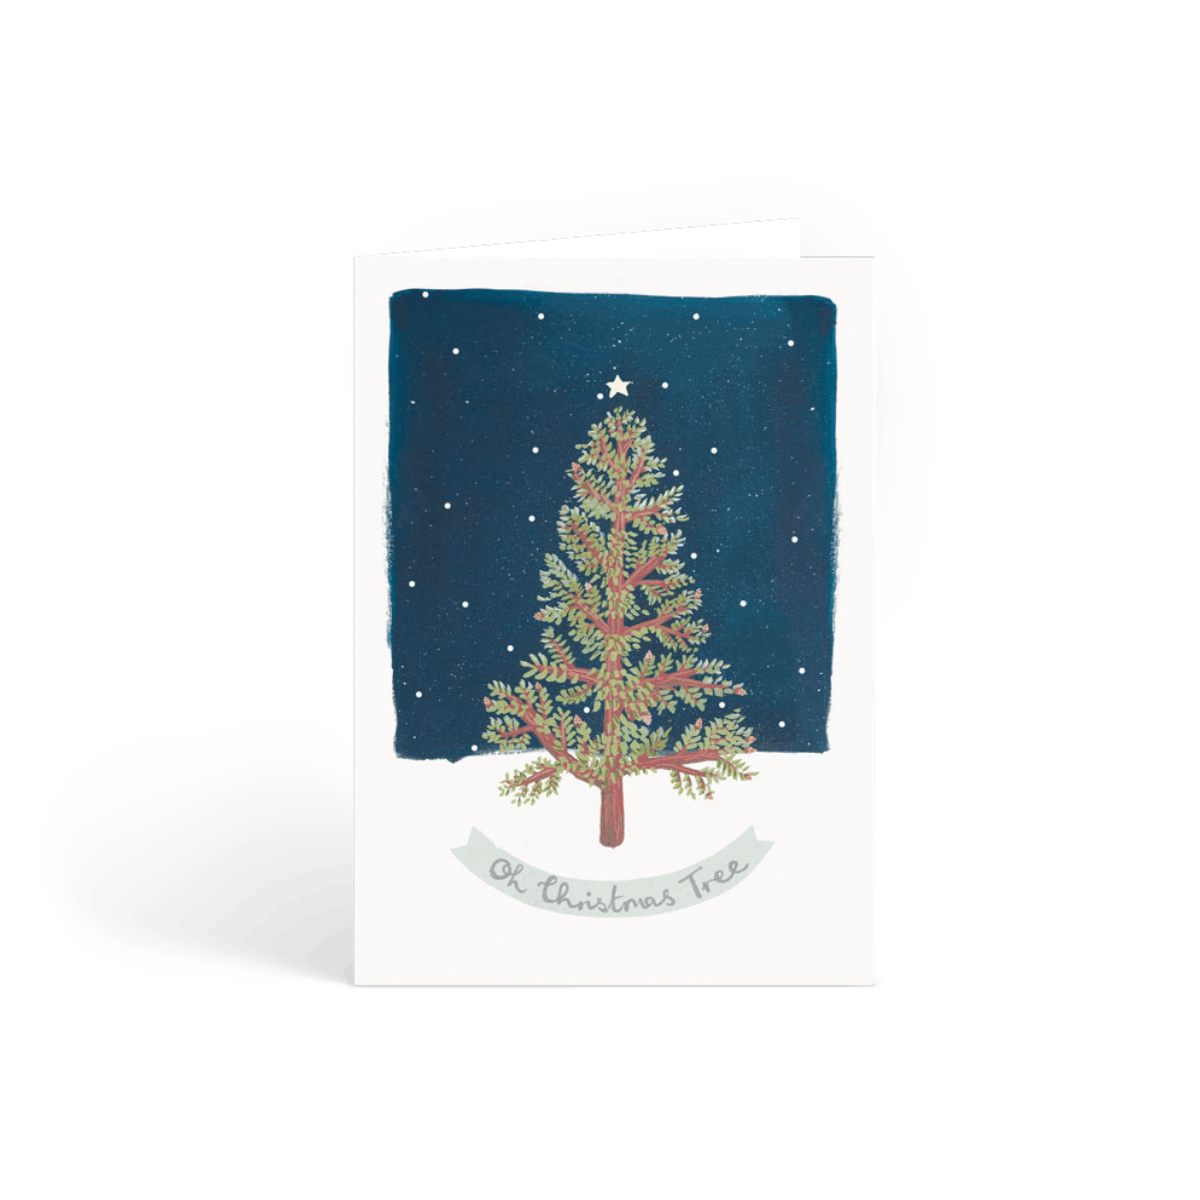 Https%3a%2f%2fwww.papier.com%2fproduct image%2f7977%2f2%2foh christmas tree 1973 avant 1472563463.png?ixlib=rb 1.1